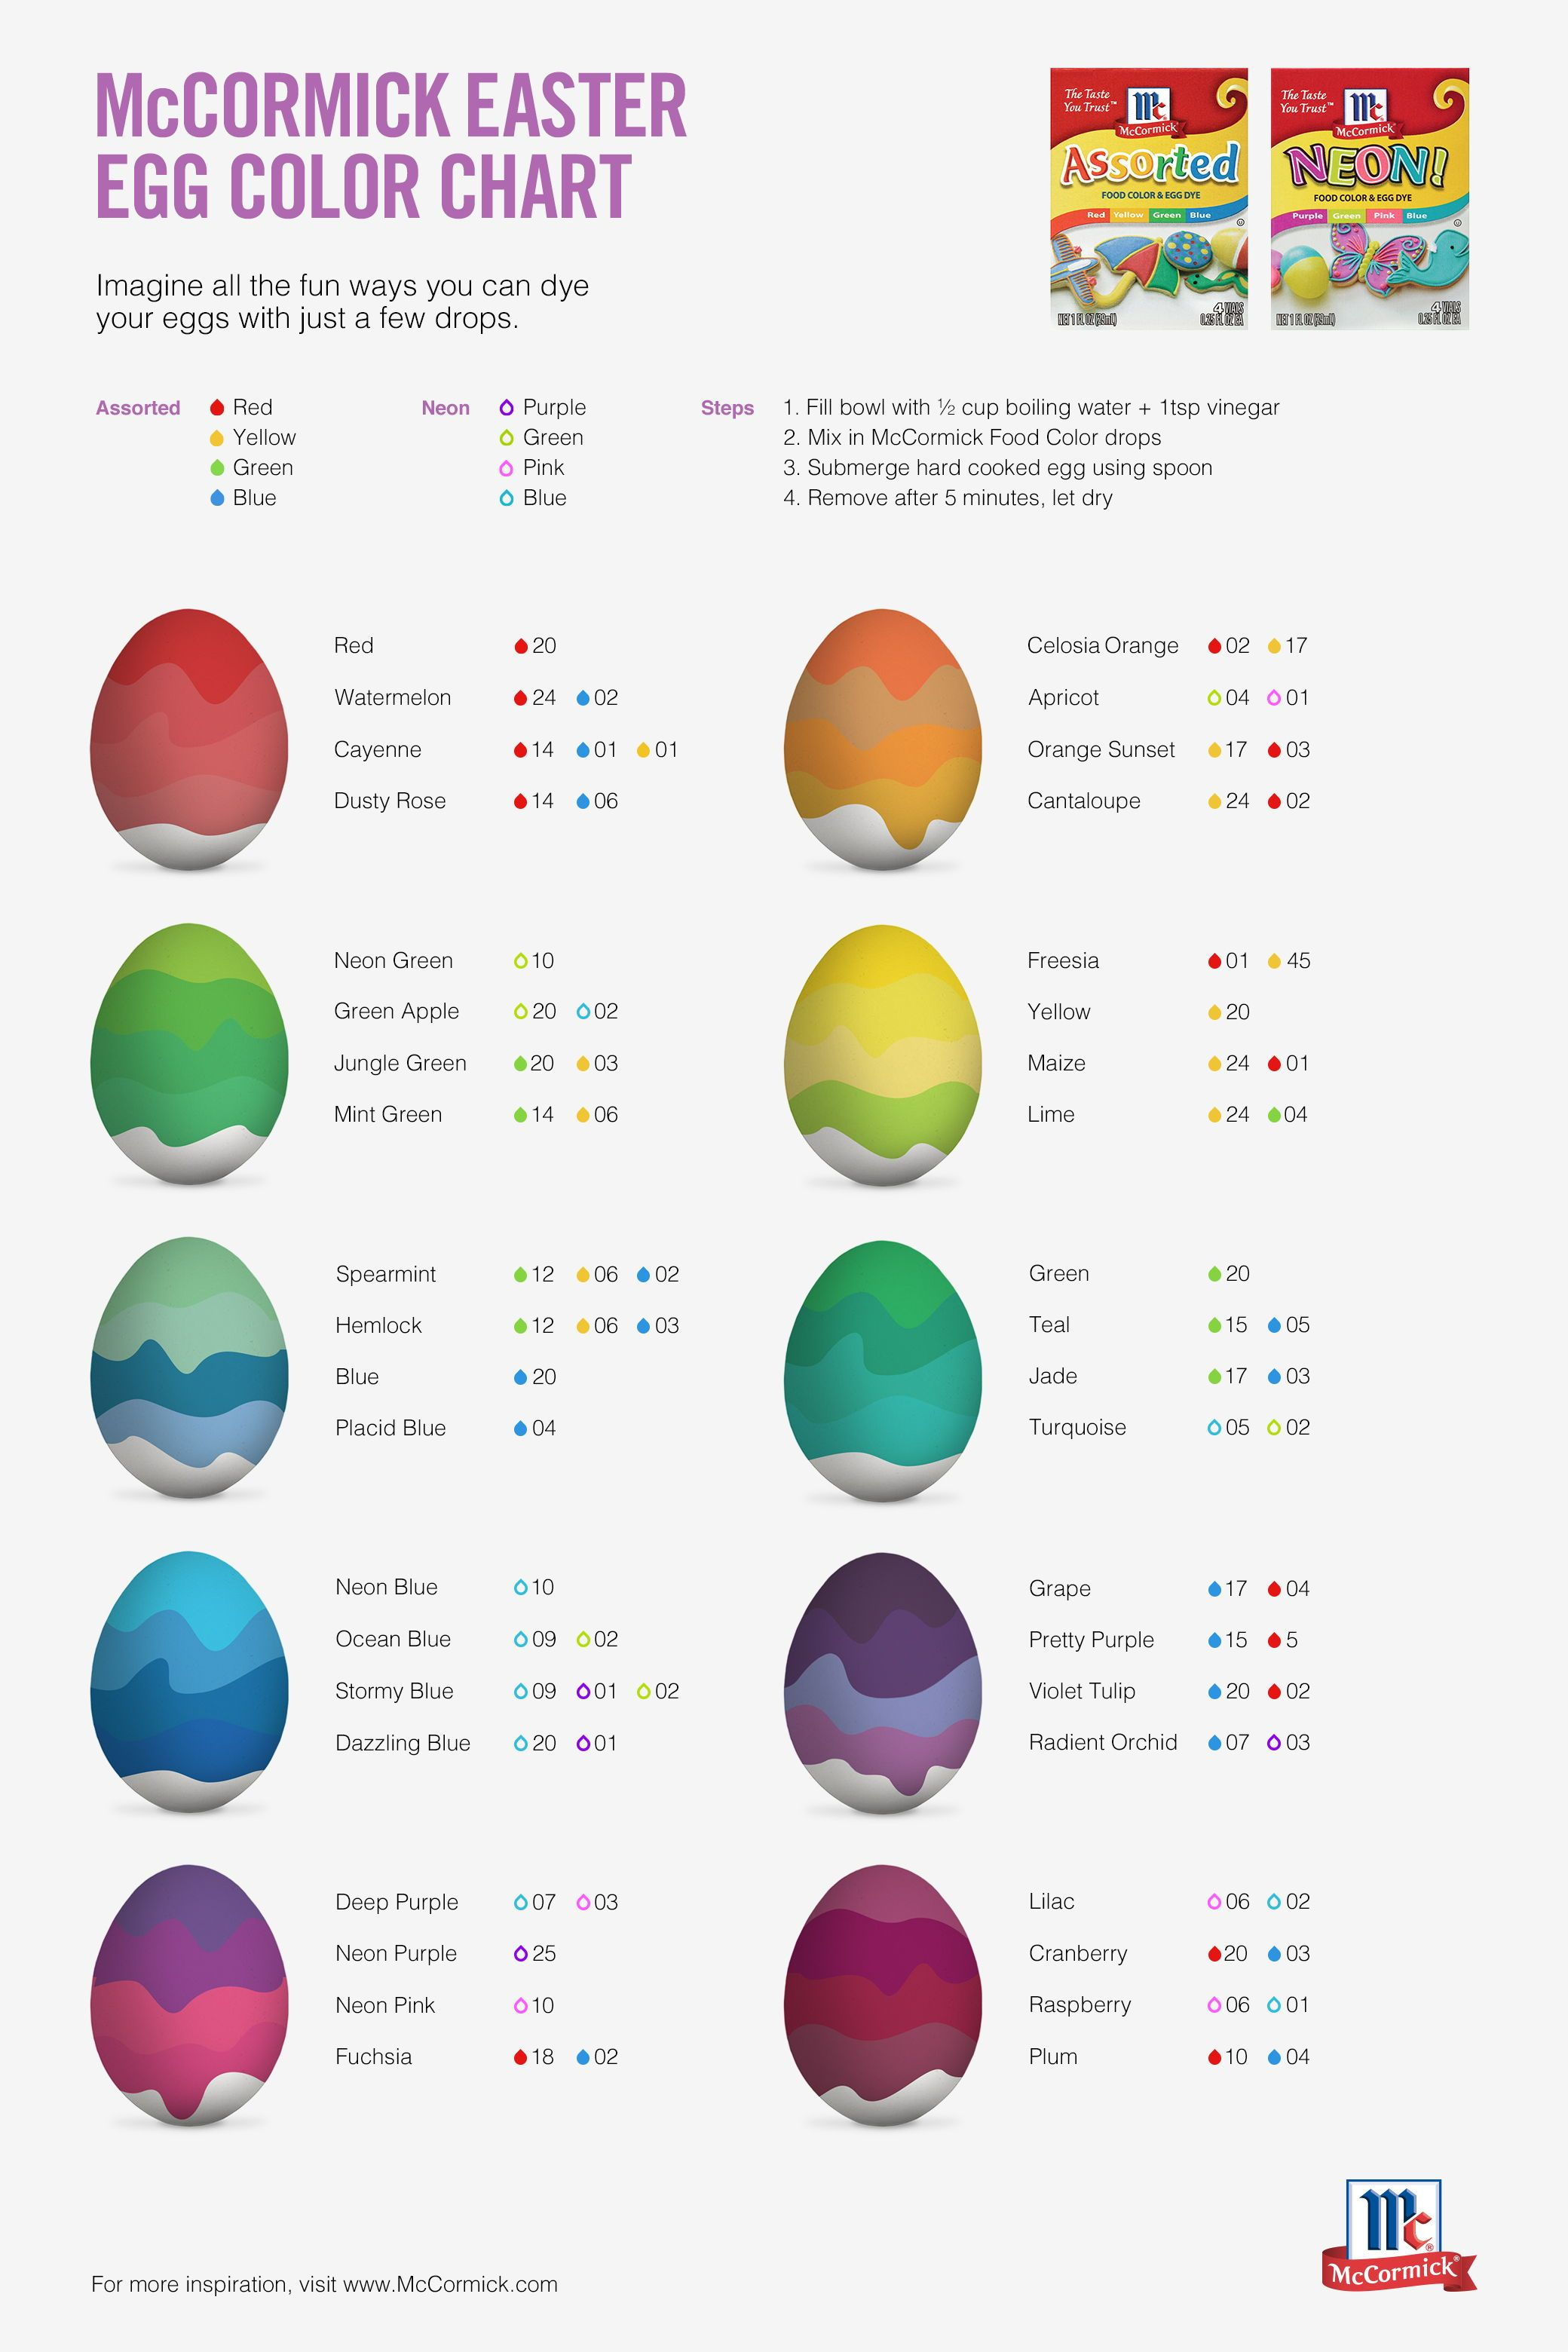 Diy easter egg decorating for every color of the rainbow made easy with mccormick chart imagine all fun ways you can dye your eggs also create any this dollarstoremom rh pinterest